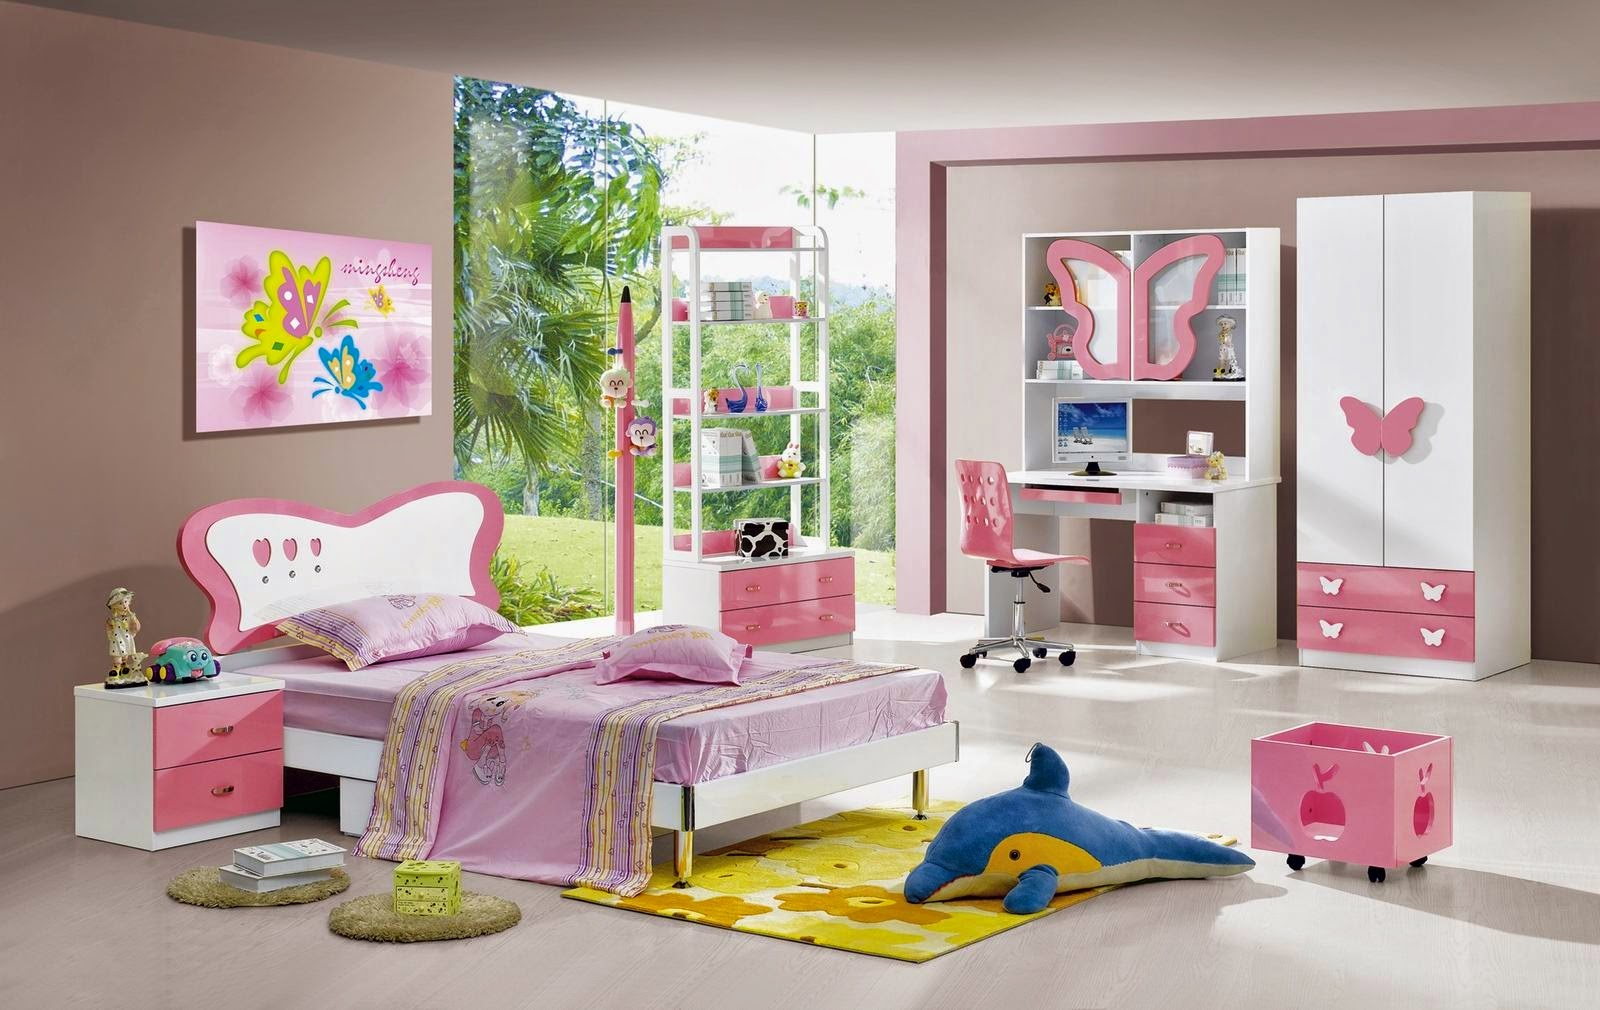 Marvellous Childrens Bedroom Decor Ideas For Furniture Small Africa Atmosphere Decorating Master Wall Teen Girls Traditional Apppie Org